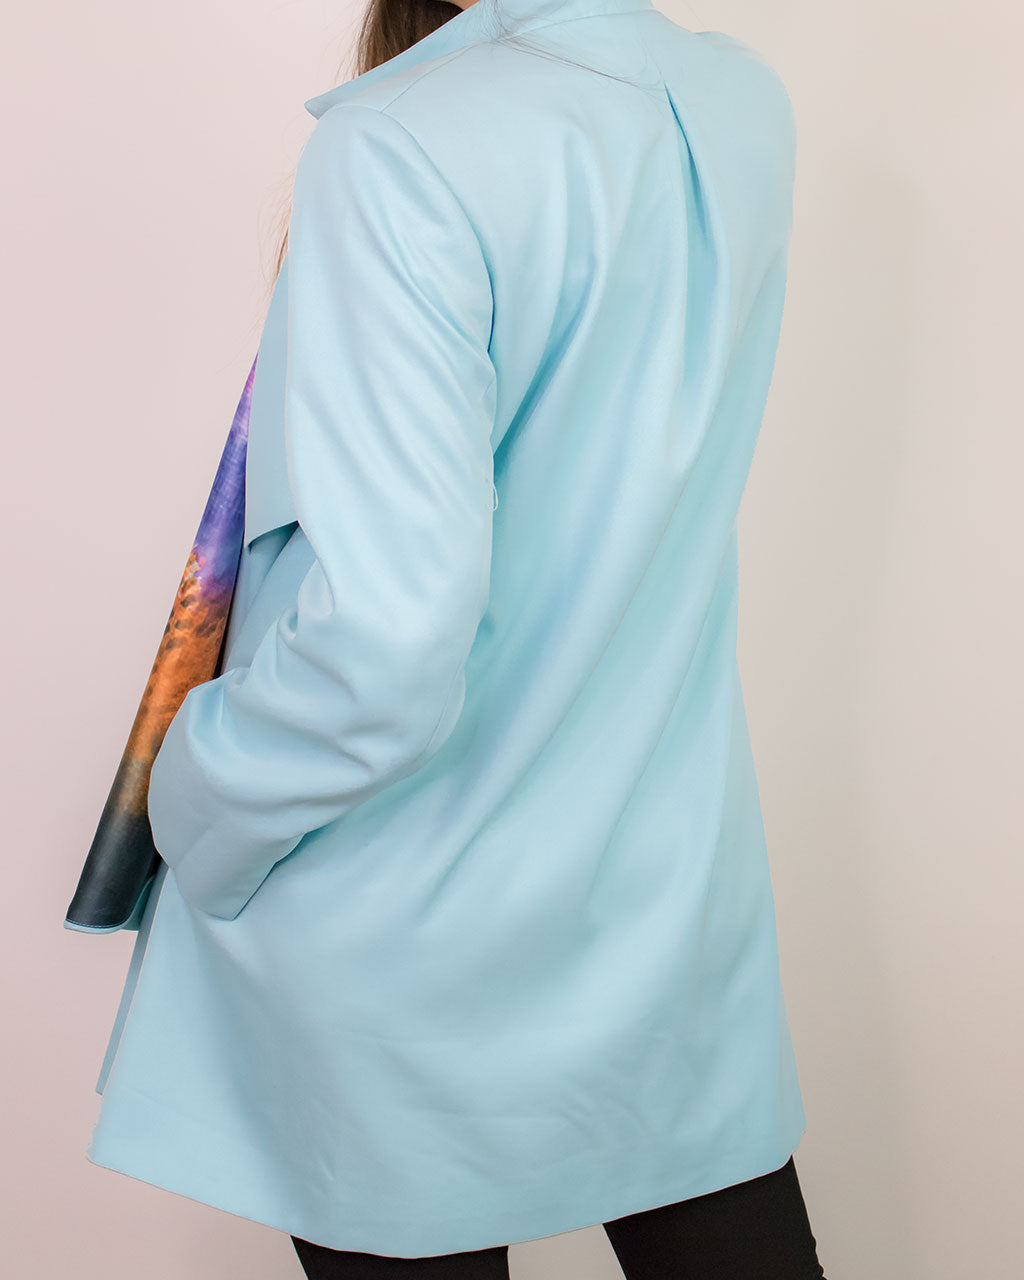 Back view of oversized blue coat ADKN